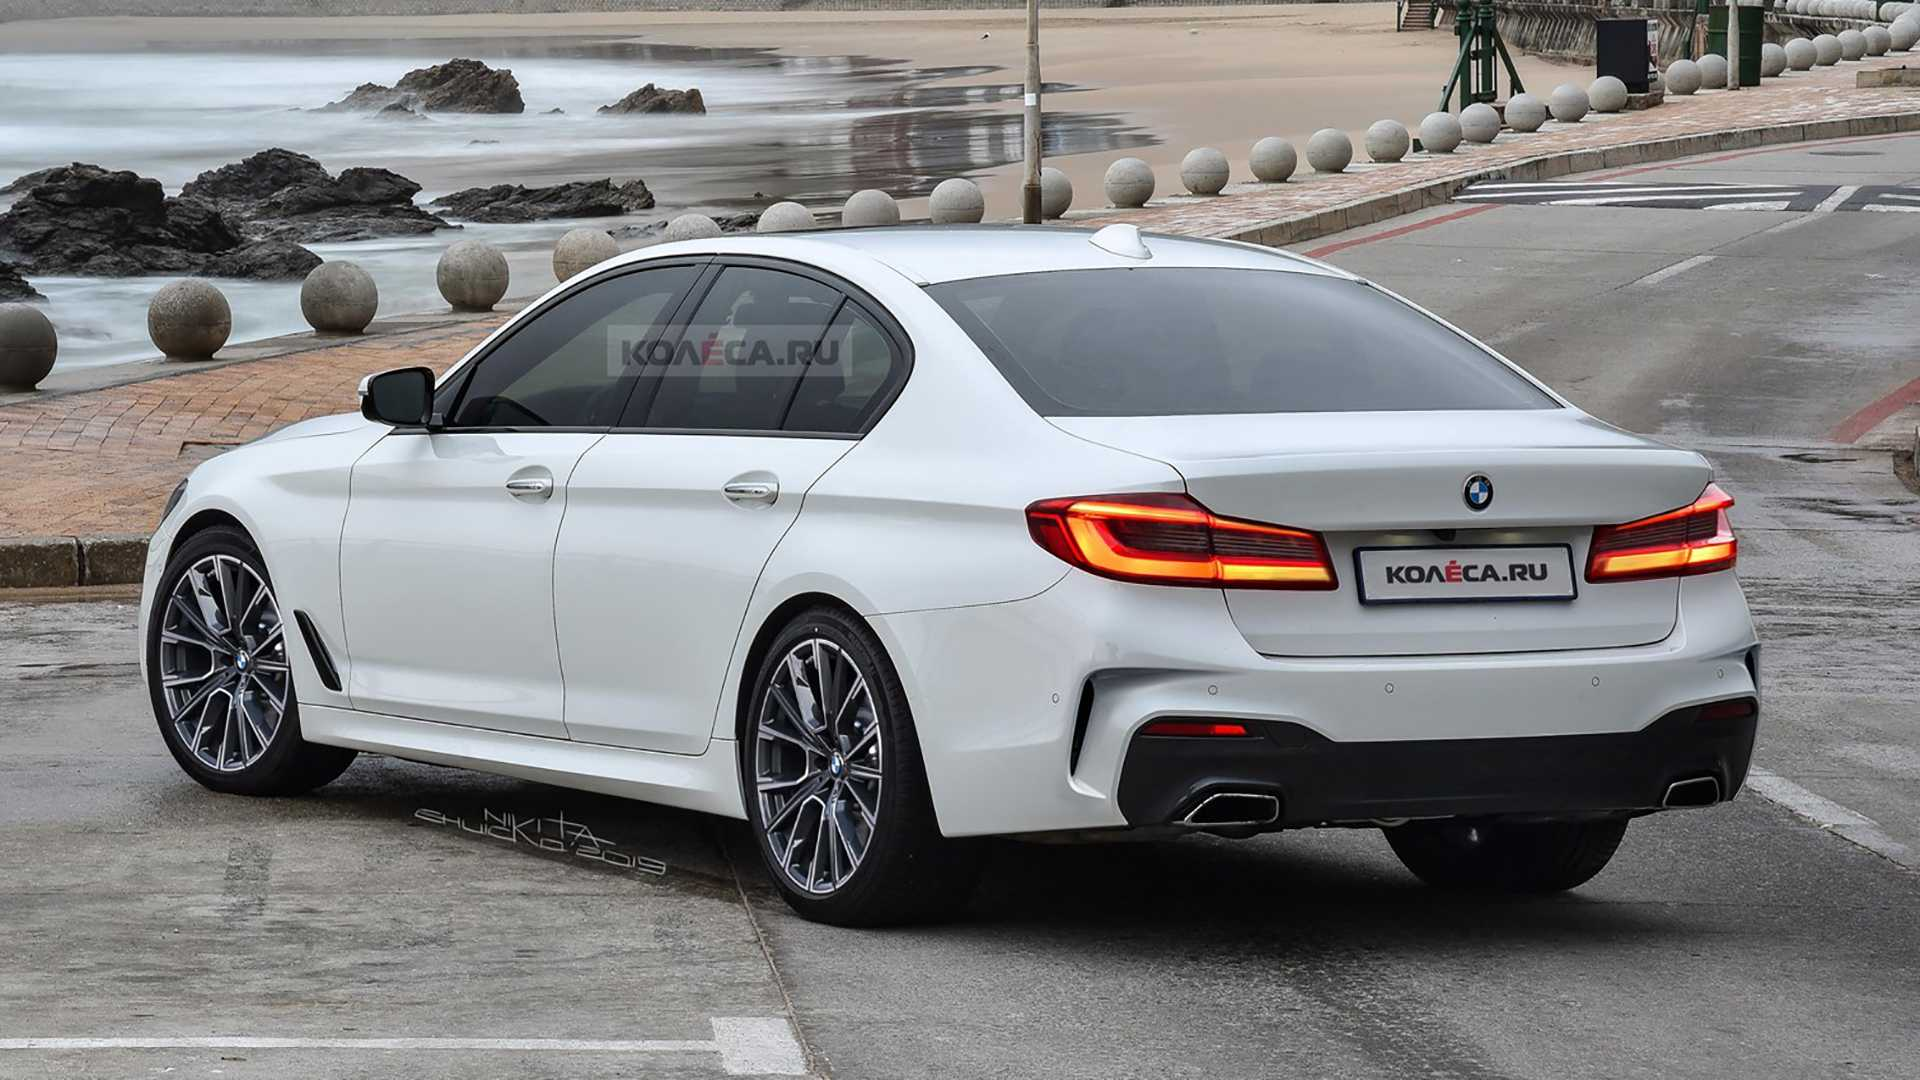 Bmw 5 Series Mid Cycle Refresh Imagined In New Rendering